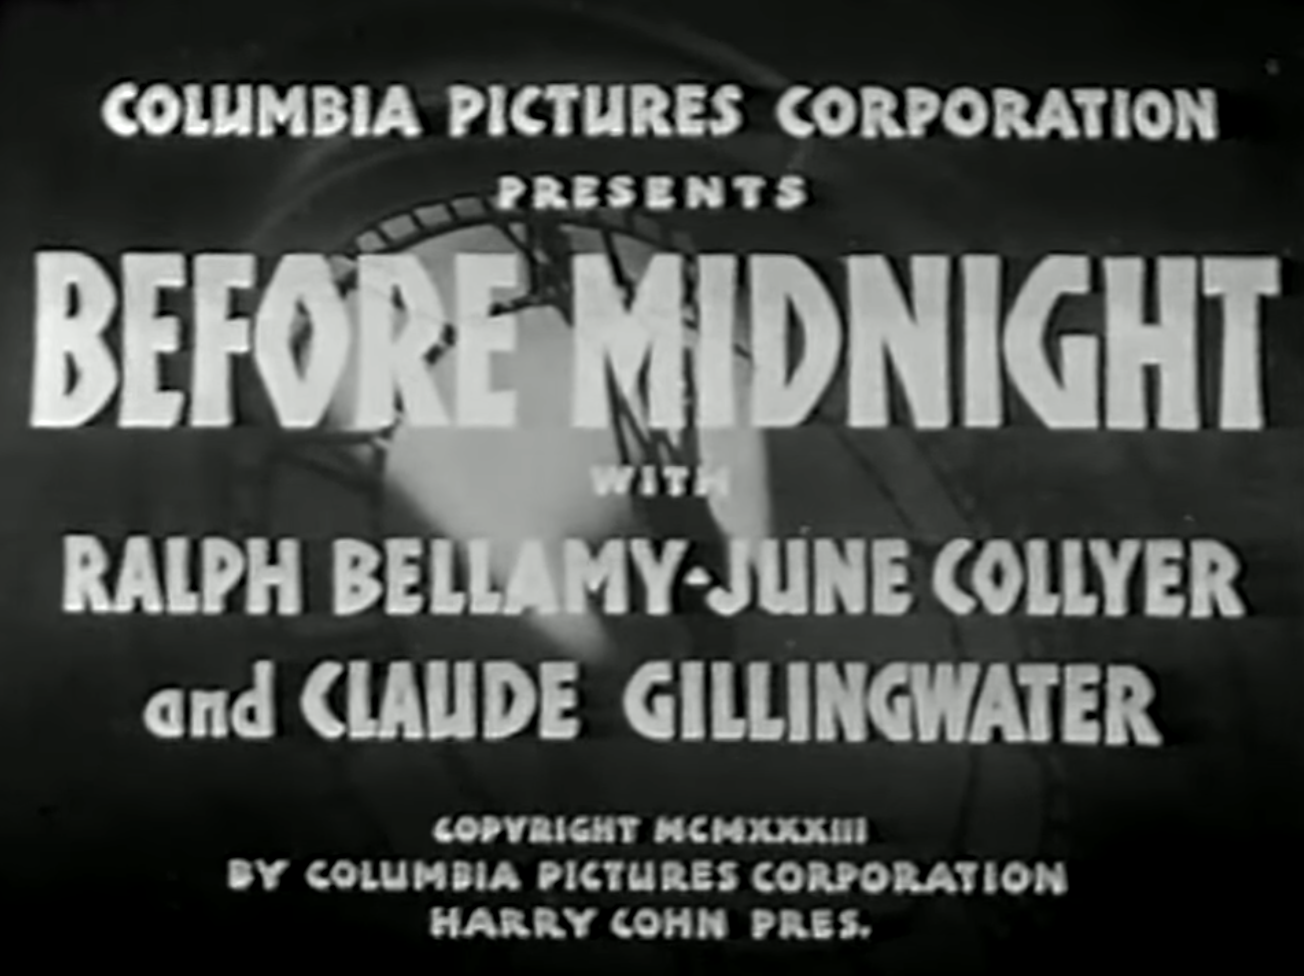 Quota Quickie A Movie Review Blog Before Midnight 1933